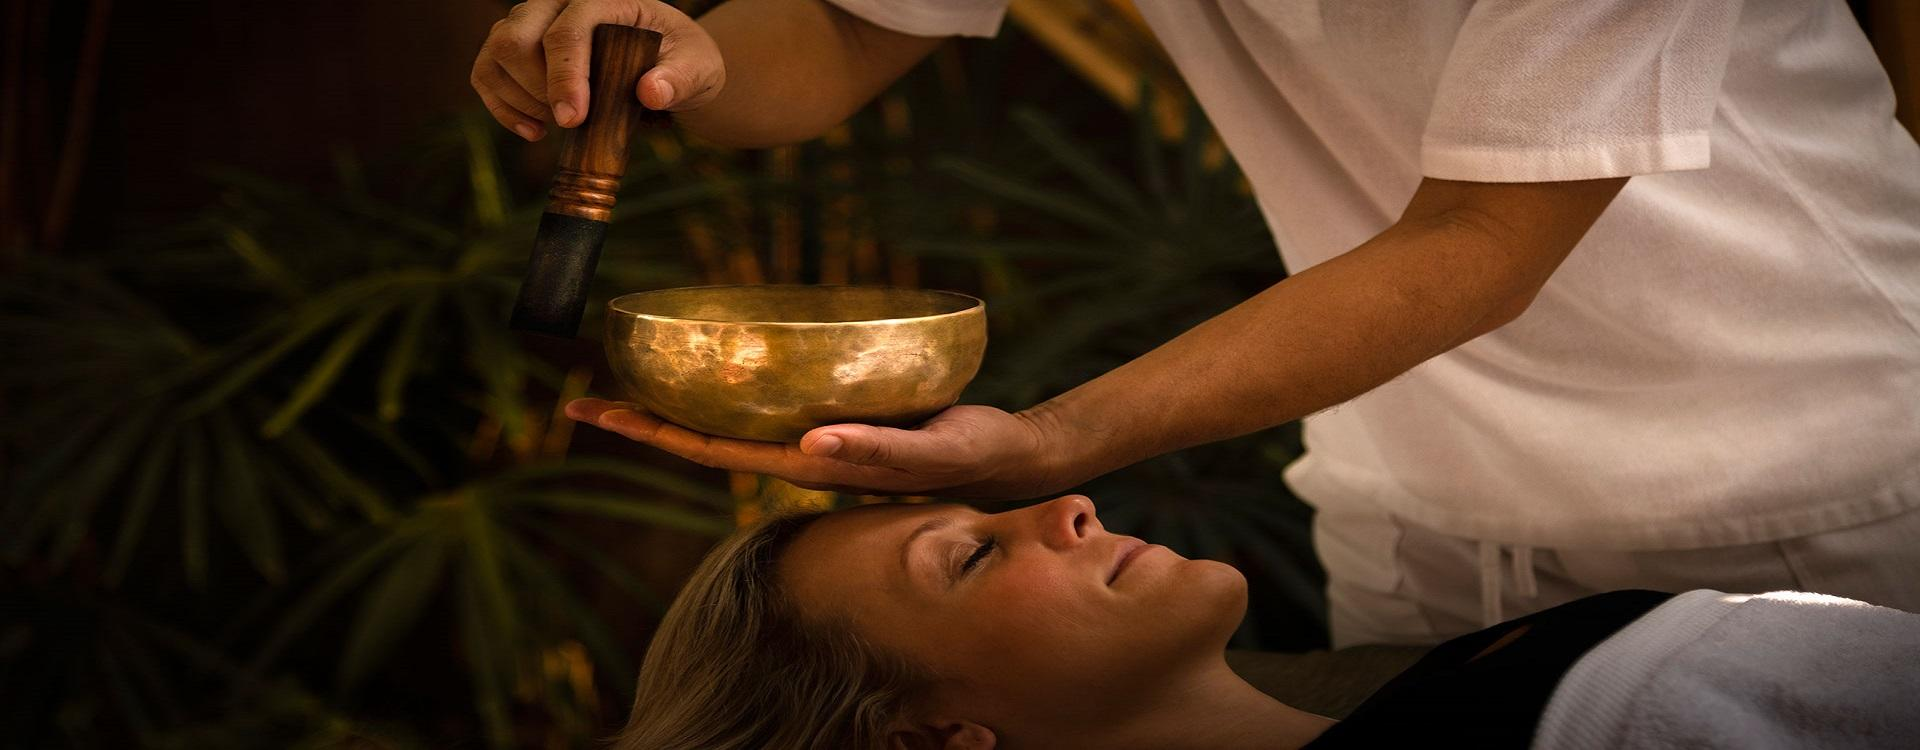 Anantara_Angkor_Traditional Khmer Massage with Indian Head Massage